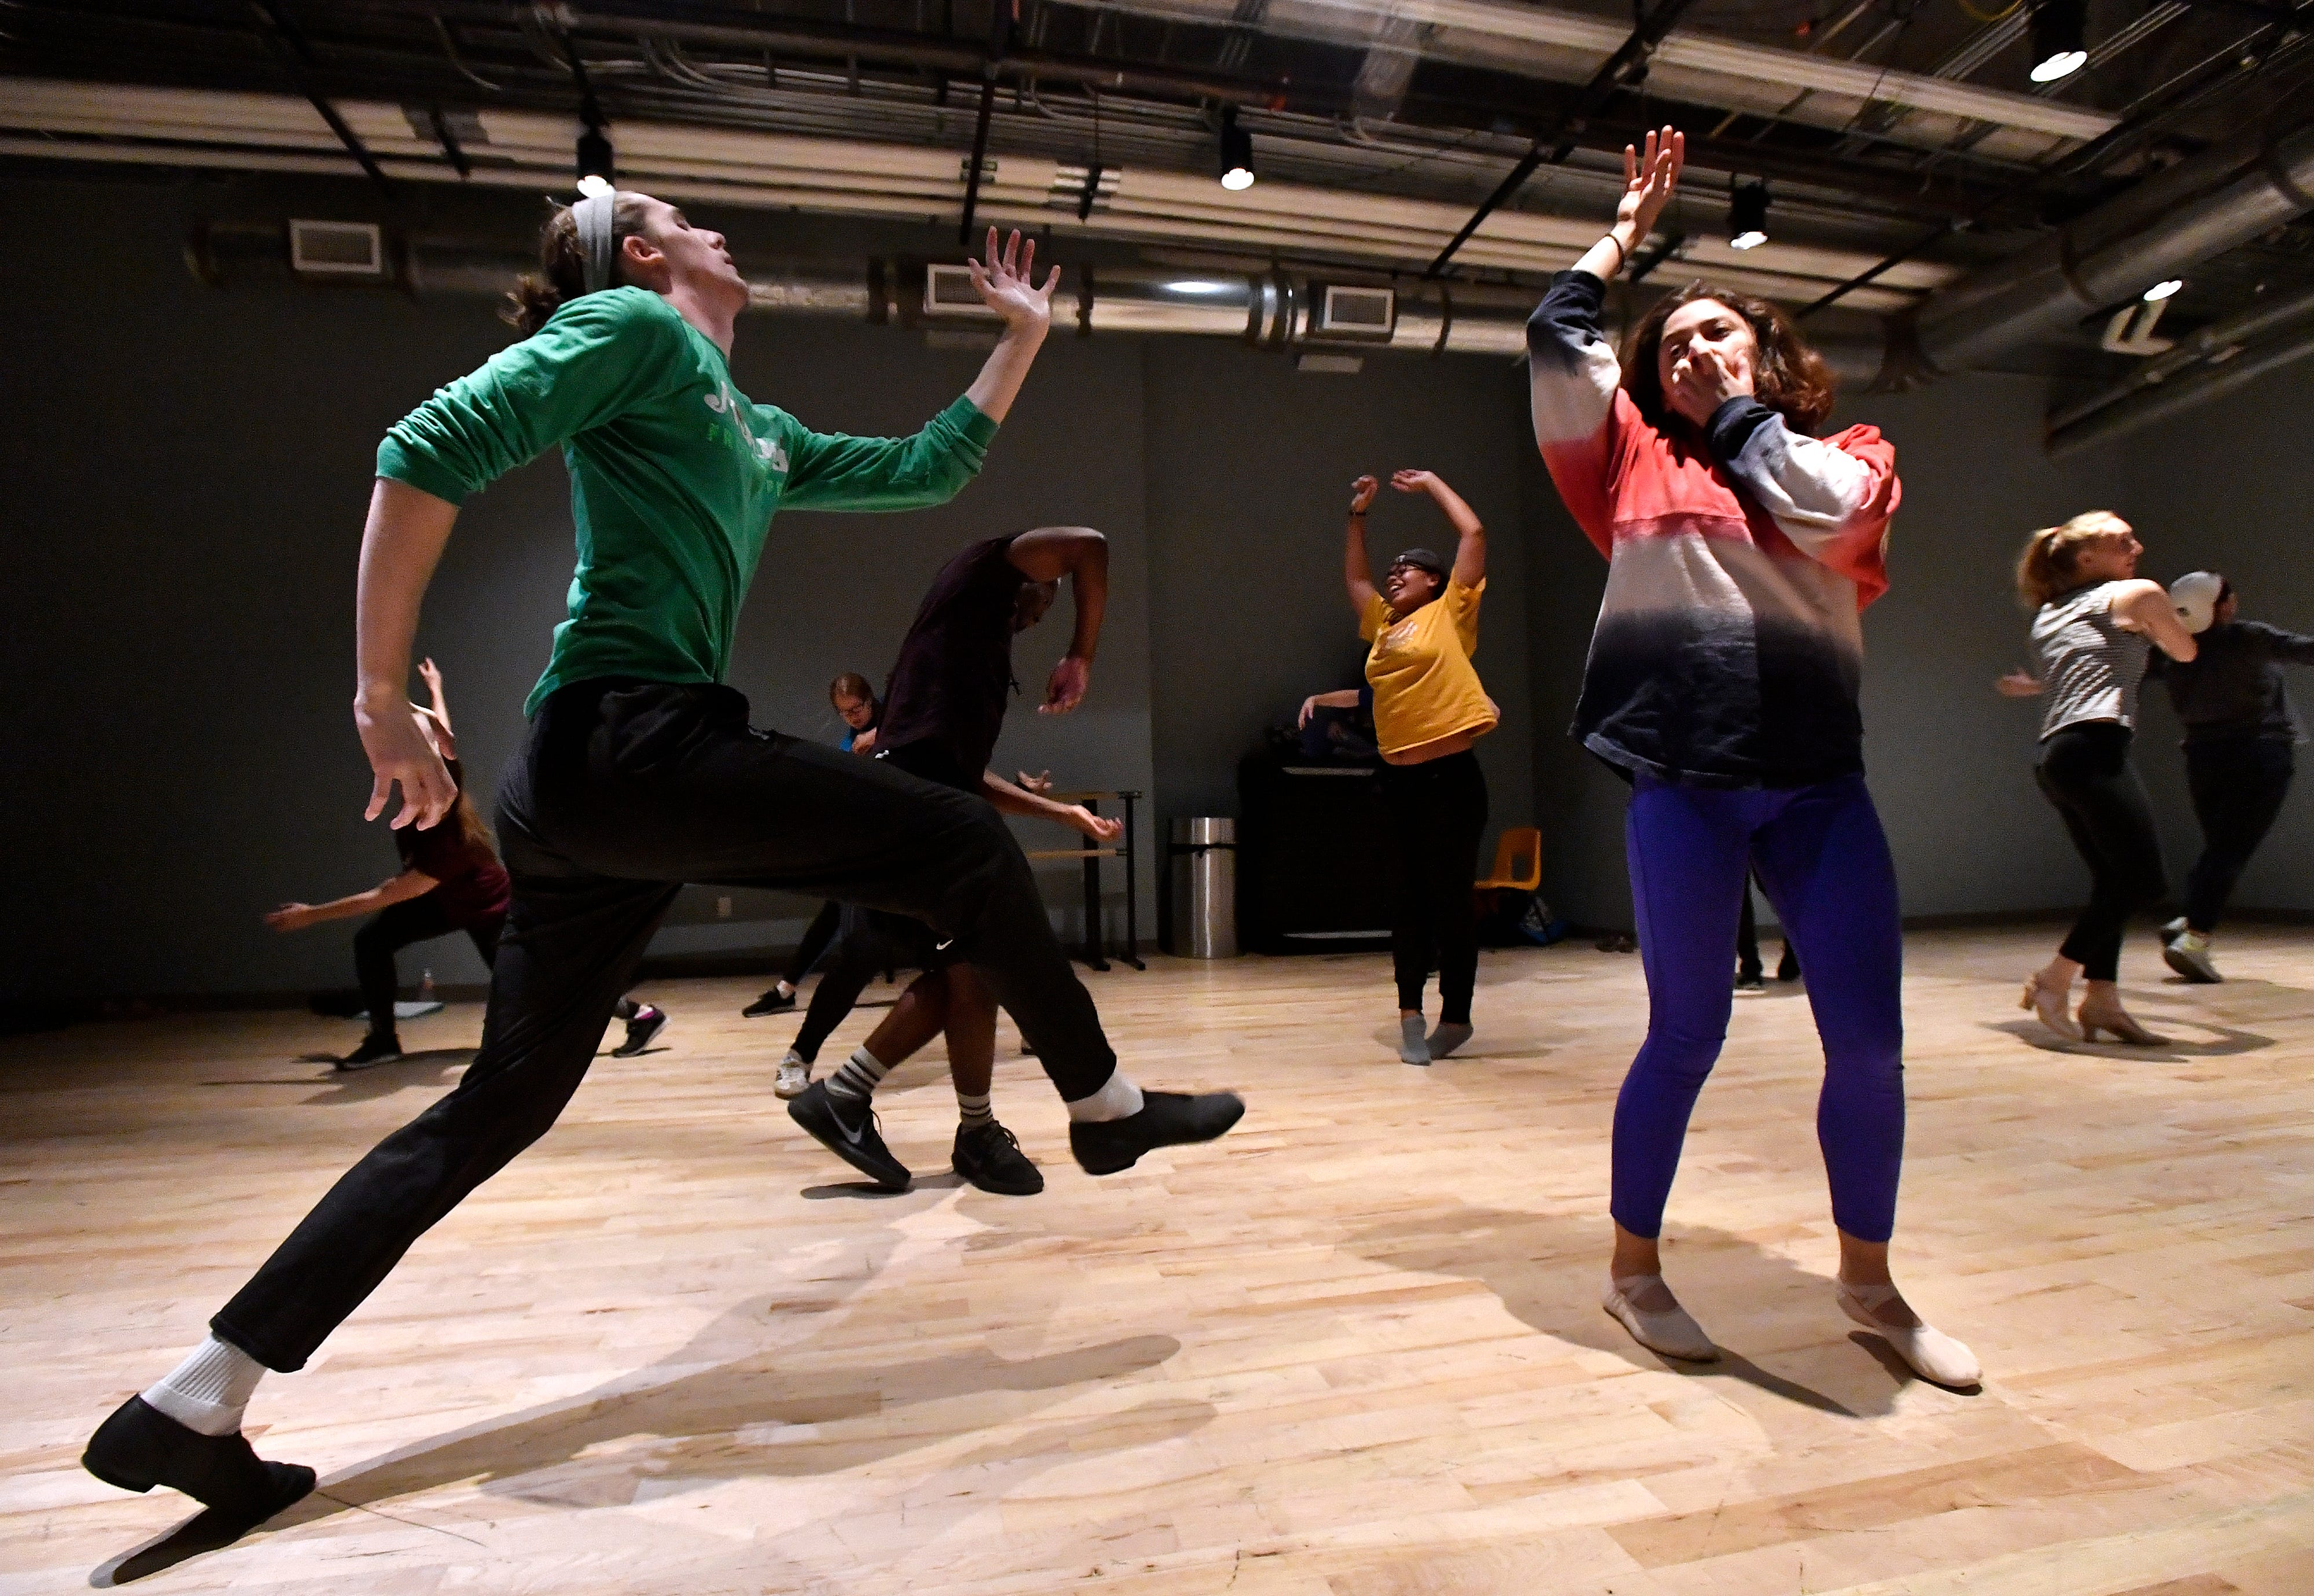 """At Abilene Christian University, Corban Gililland (left) and Sierra Cowell (right) rehearse with other student dancers Saturday Dec. 1, 2018 for their show """"One Night Only"""" to be performed Saturday Dec. 8 in the Fulks Theater. This will be the first performance of the new Dance track at ACU."""